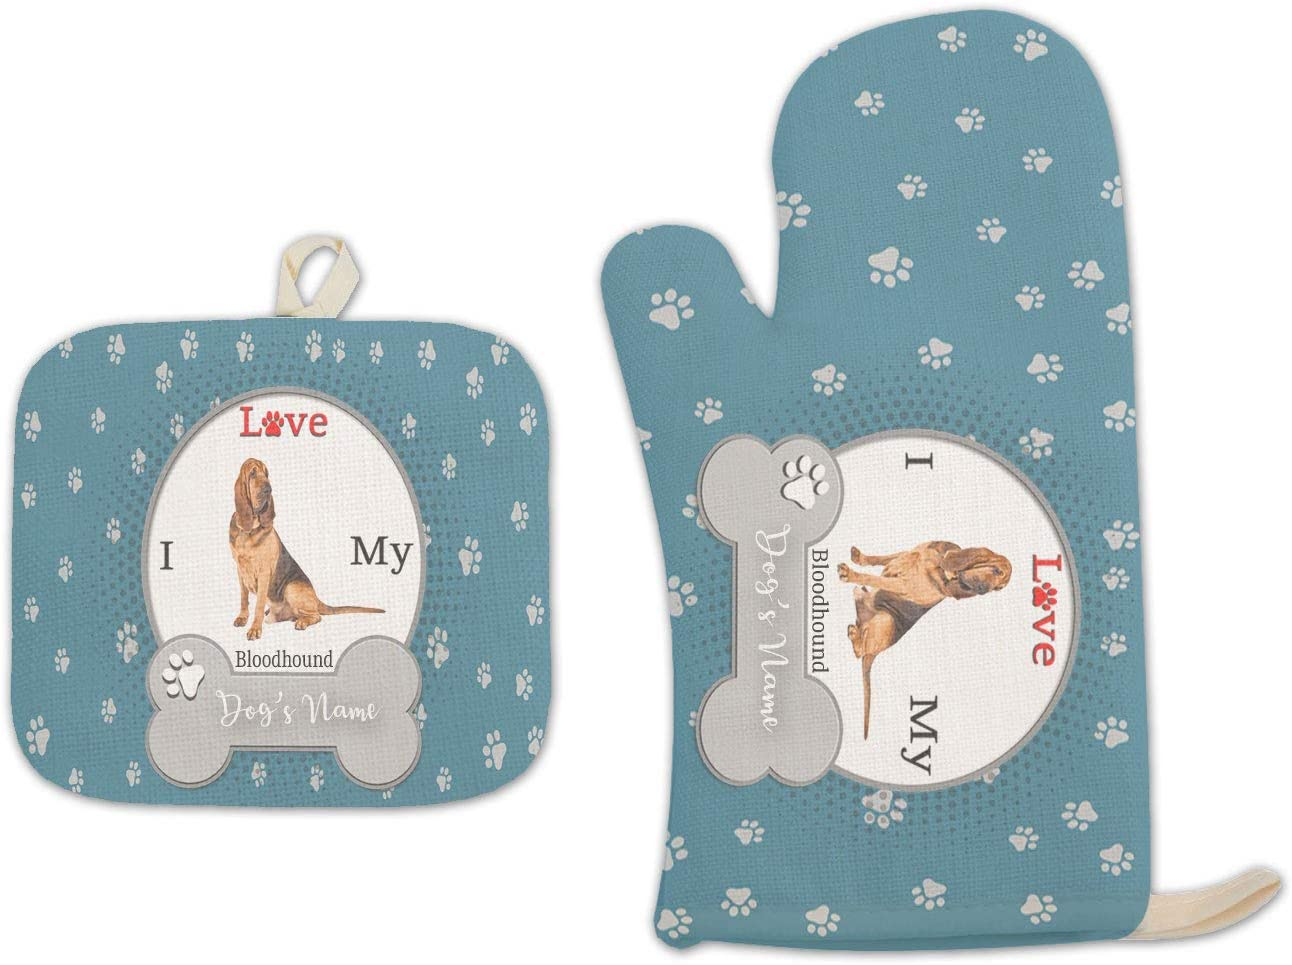 BRGiftShop Personalized Custom Name I Love My Dog Bloodhound Linen Oven Mitt and Potholder Set